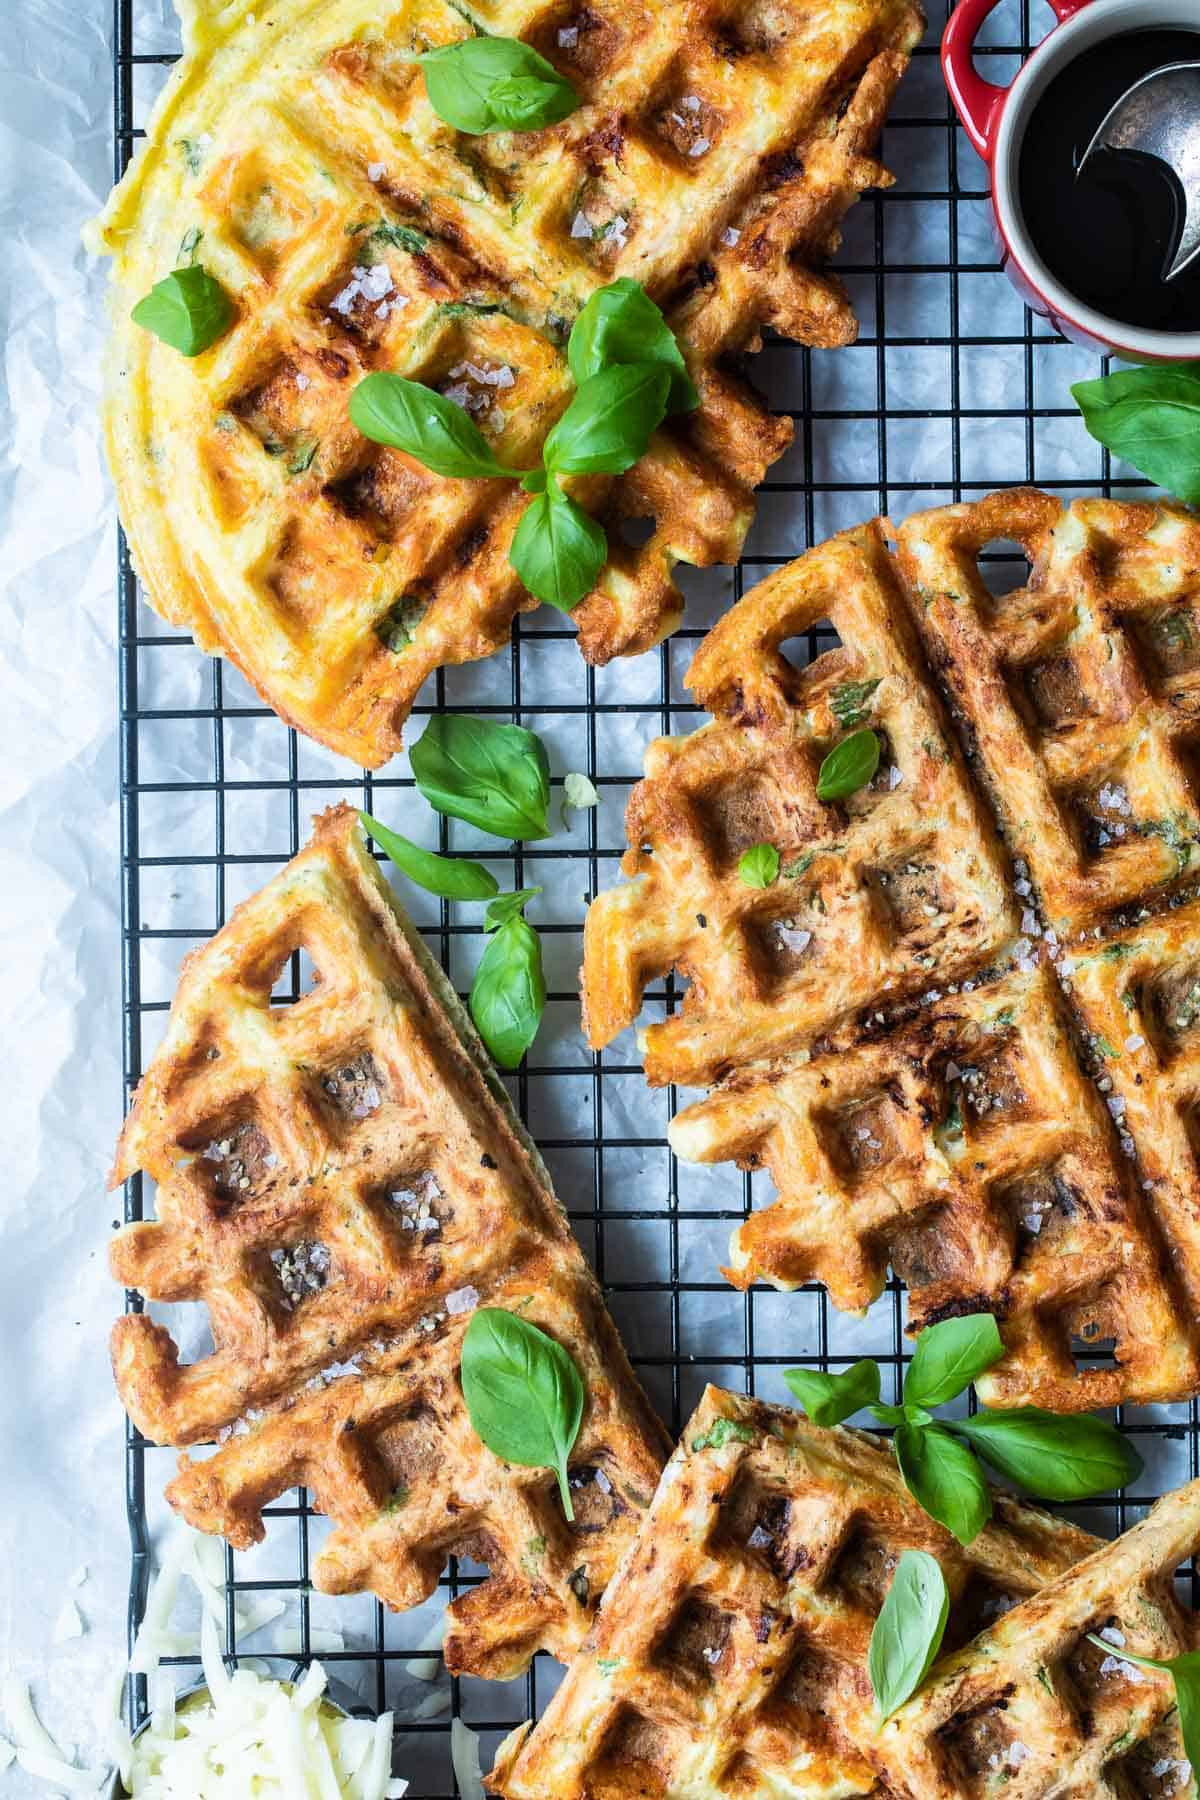 This is an easy keto Chaffle recipe with Chaffles on a wire rack